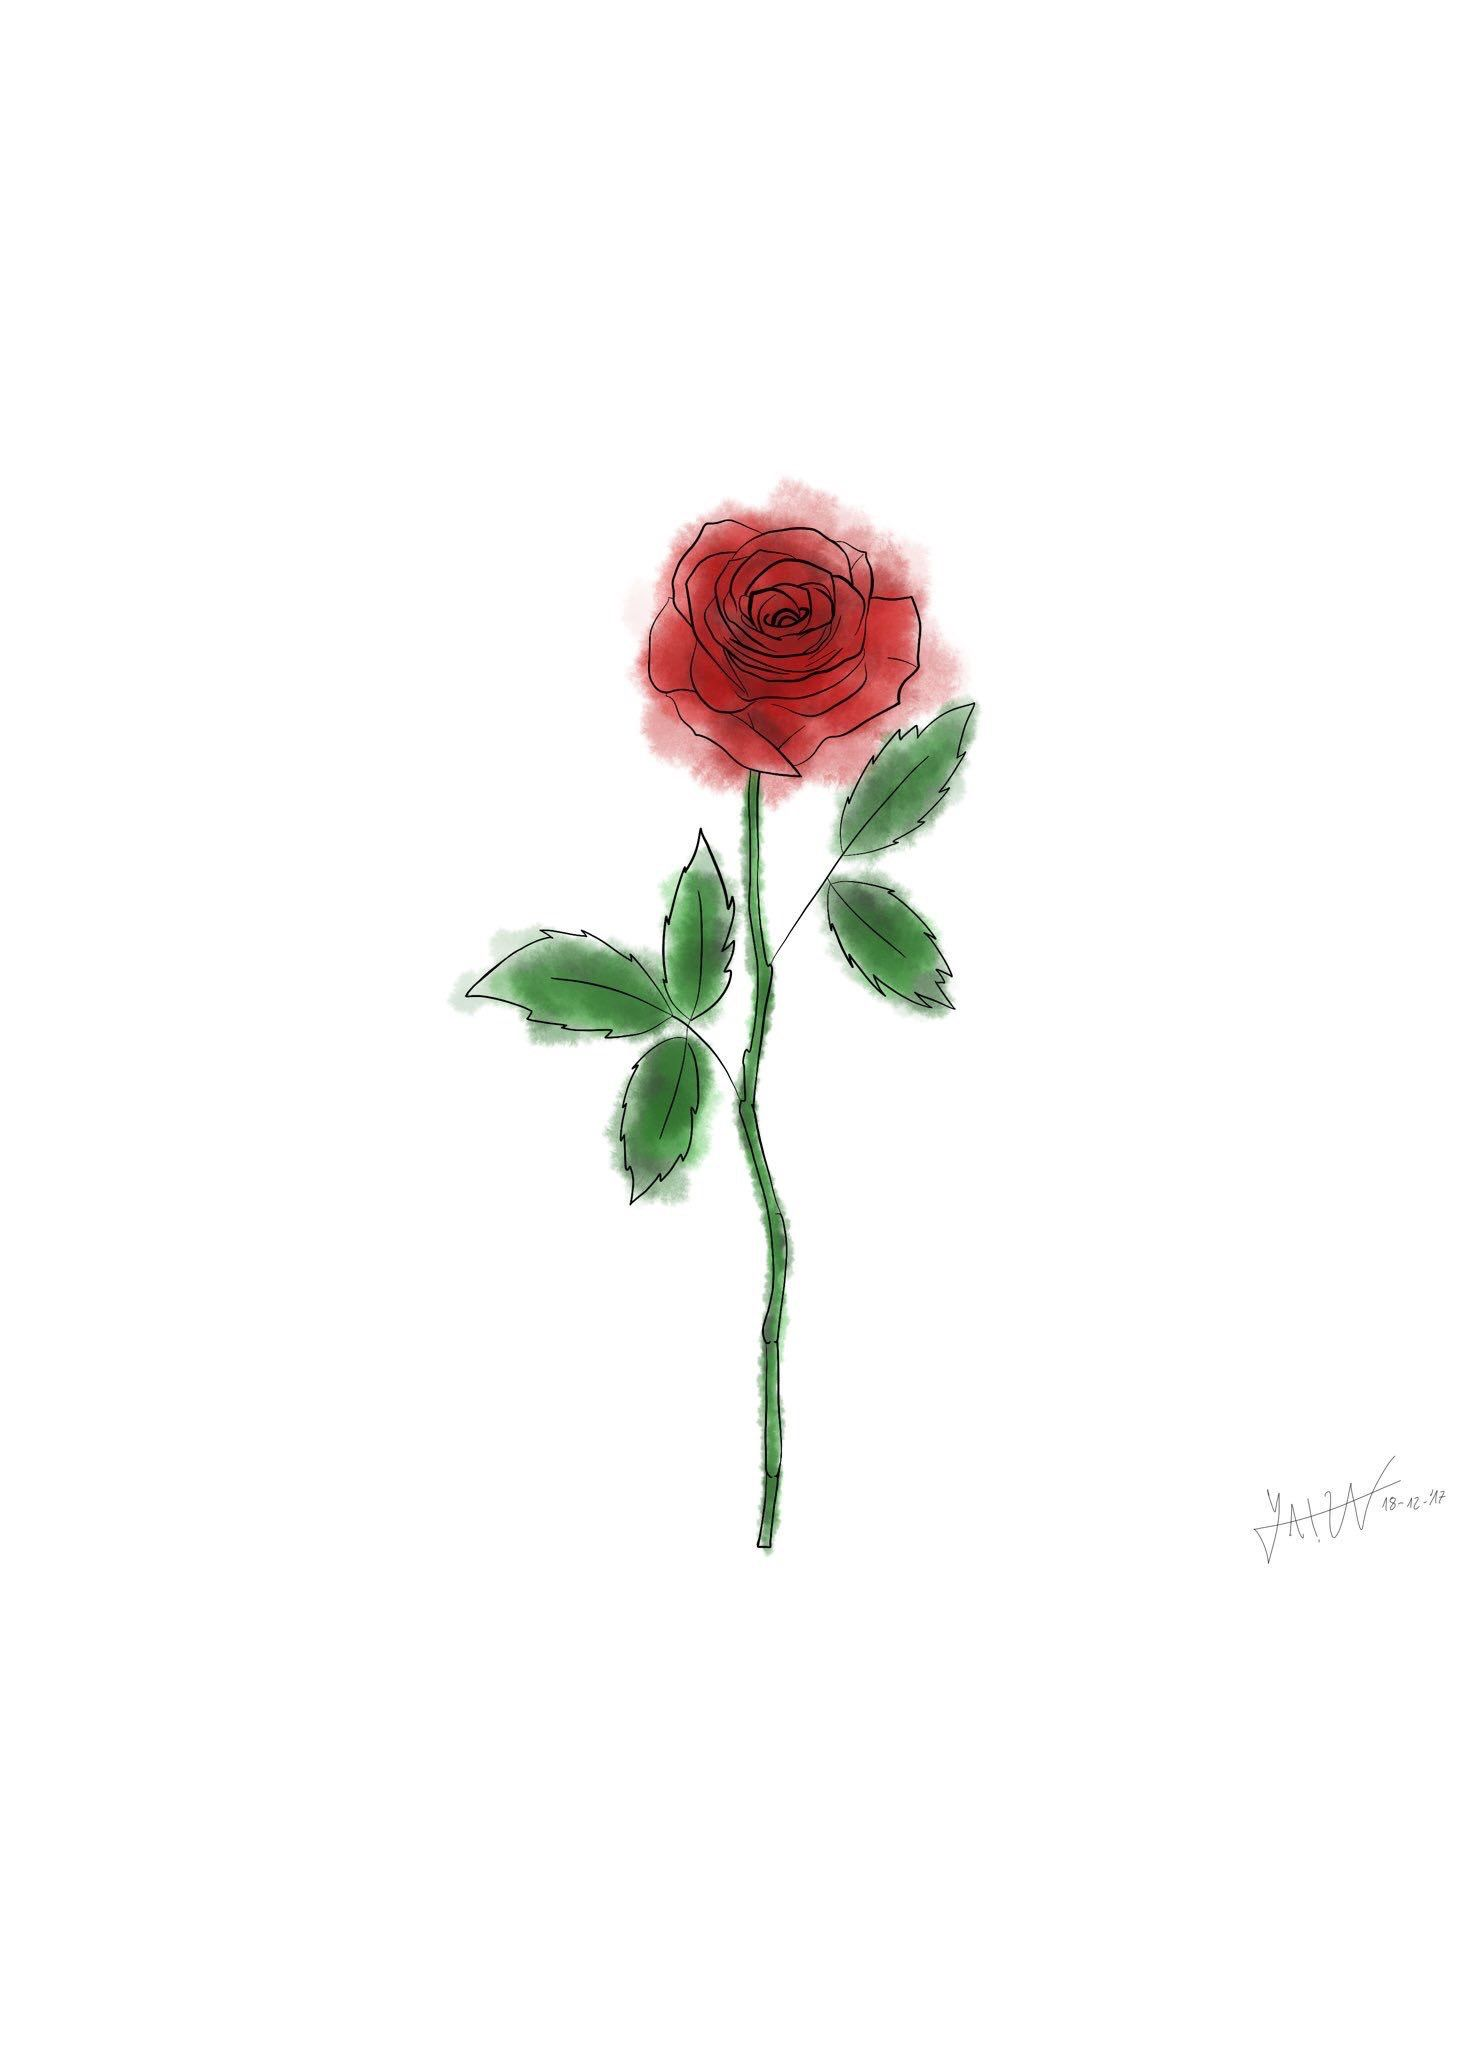 Pin by Al3xand3r Wolf3 on Drawings | Jonghyun, Rose icon ...